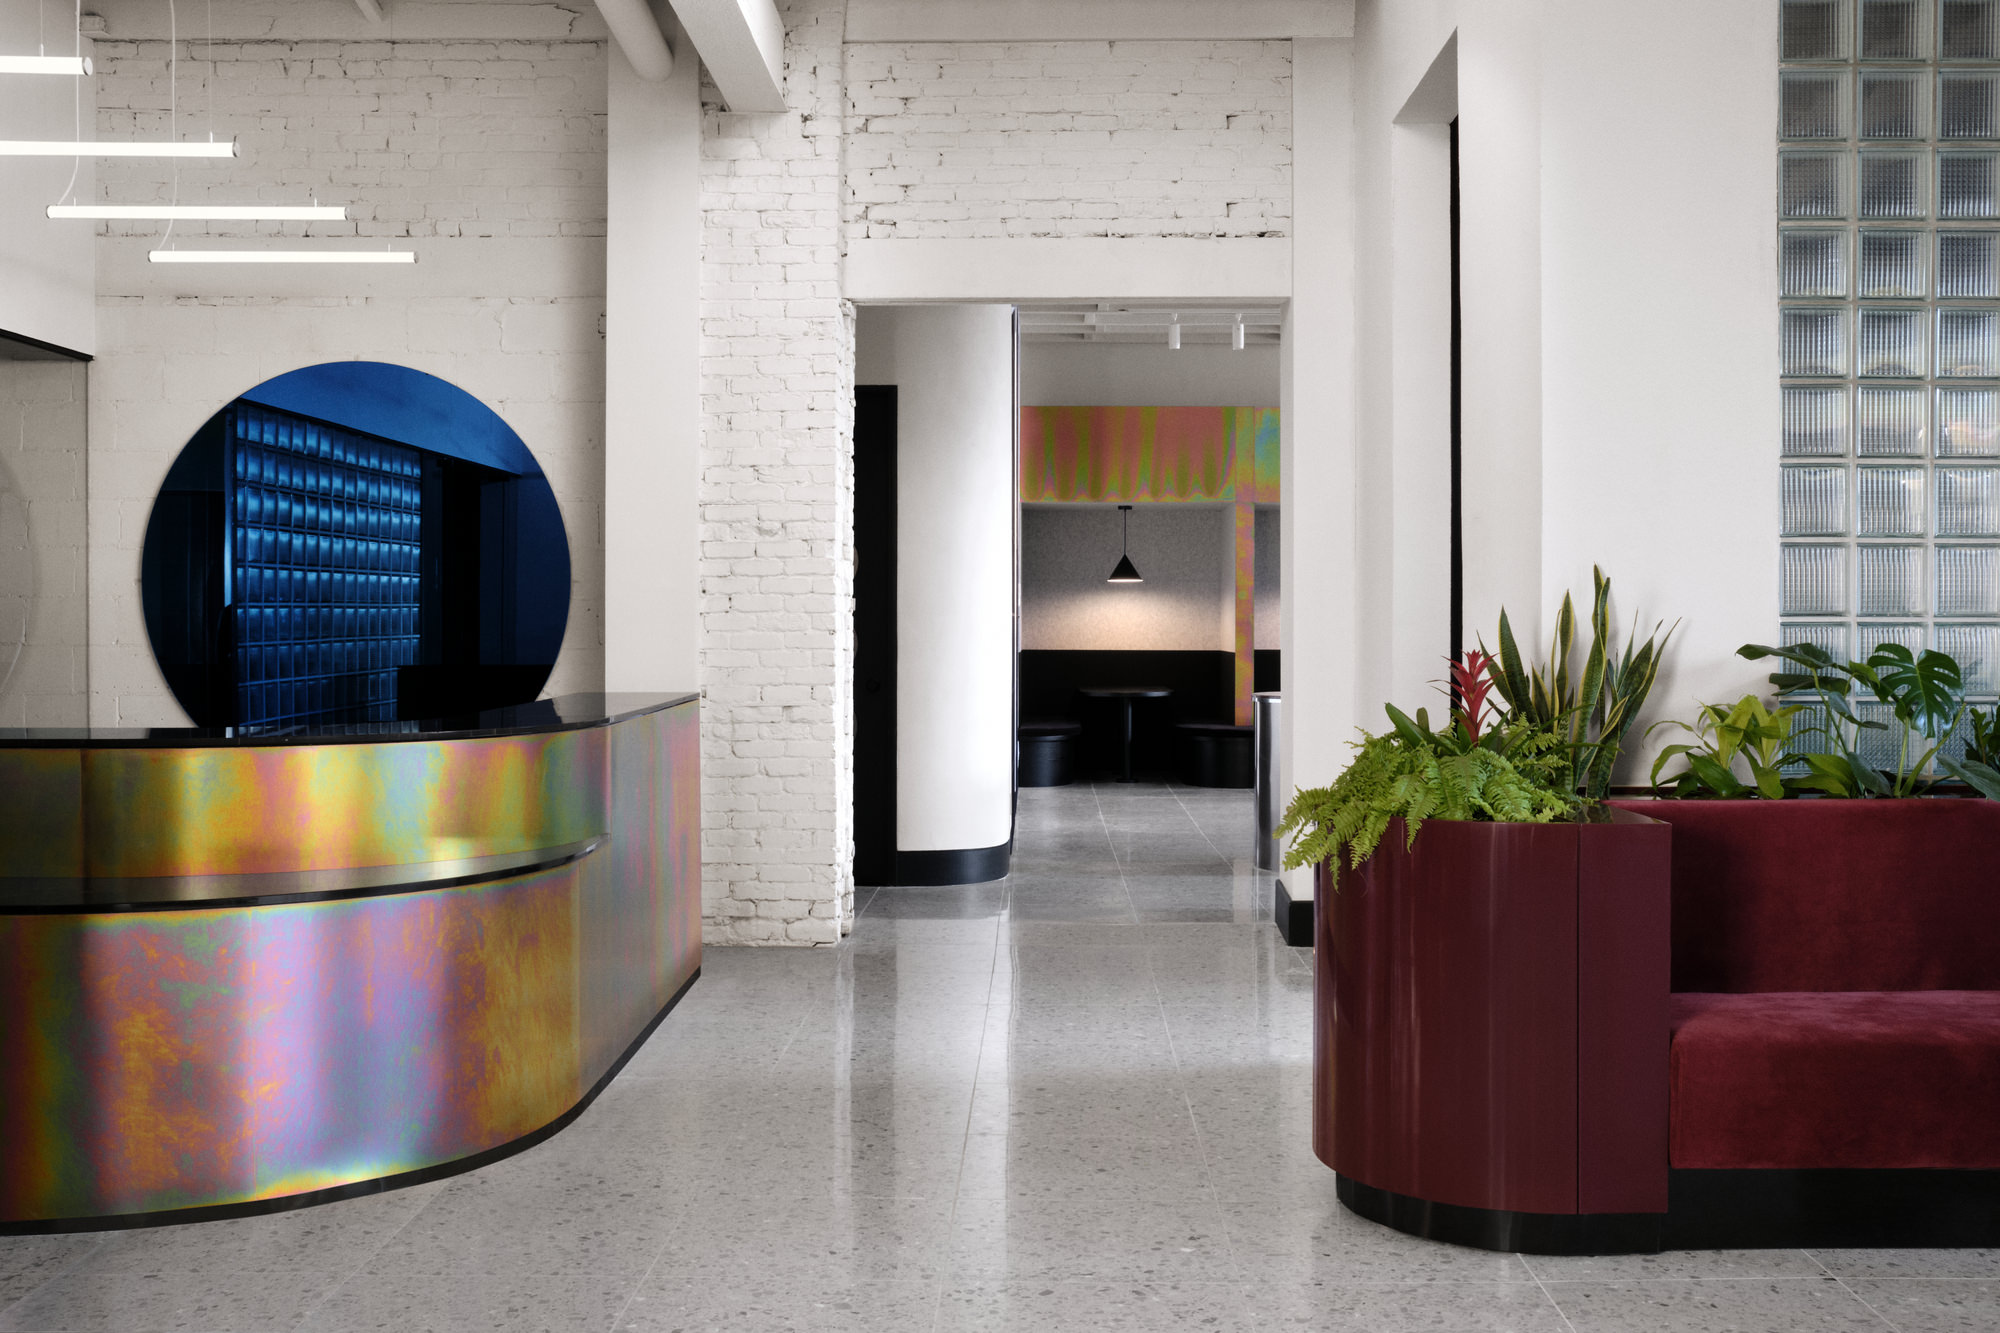 Ivy Studio Spacial Coworking Office Montreal Photo Alex Lesage Yellowtrace 01